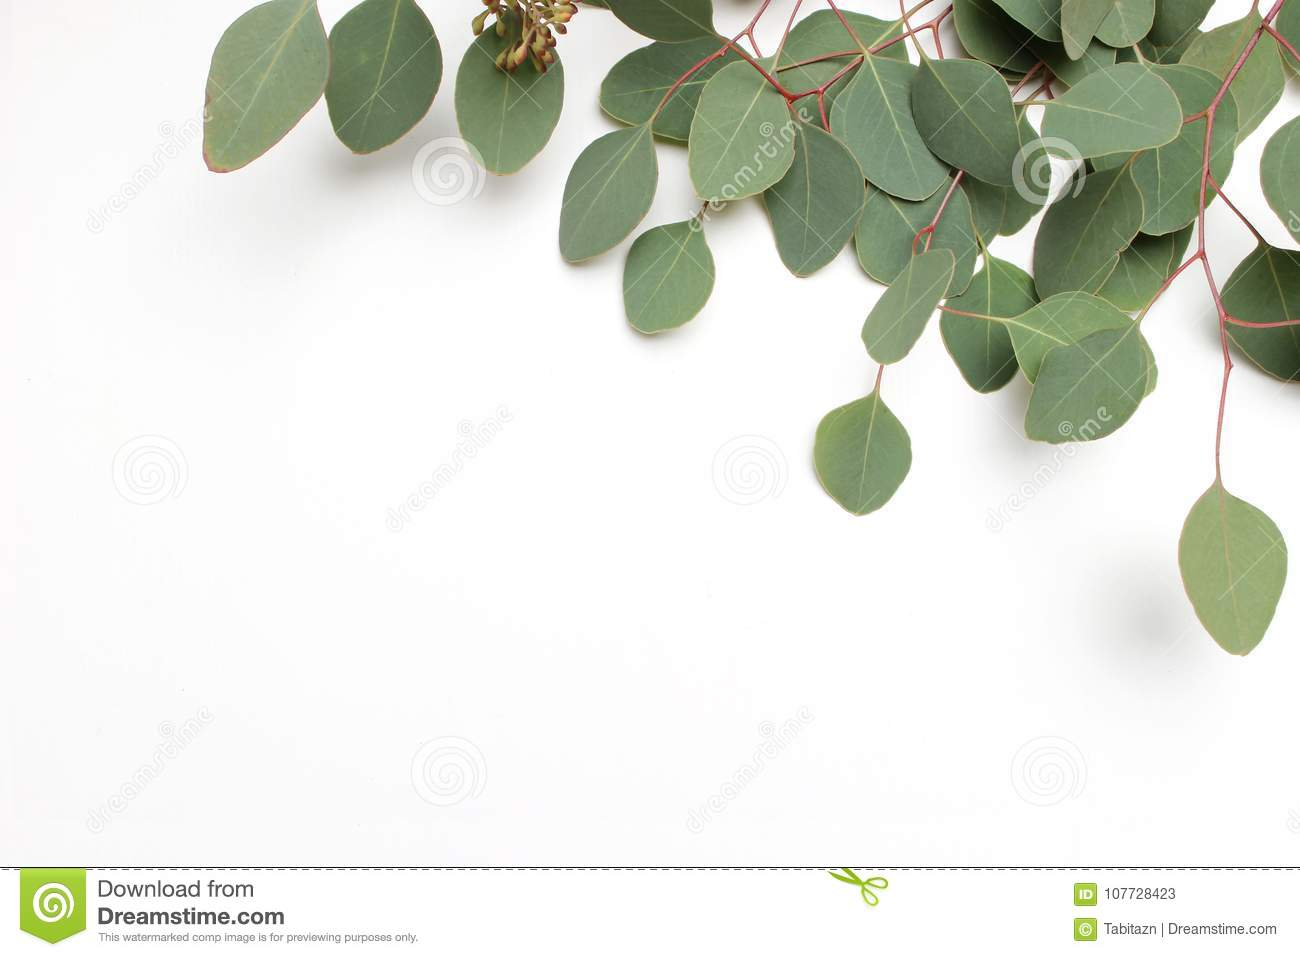 Frame, border made of green Silver dollar Eucalyptus cinerea leaves and branches on white background. Floral composition